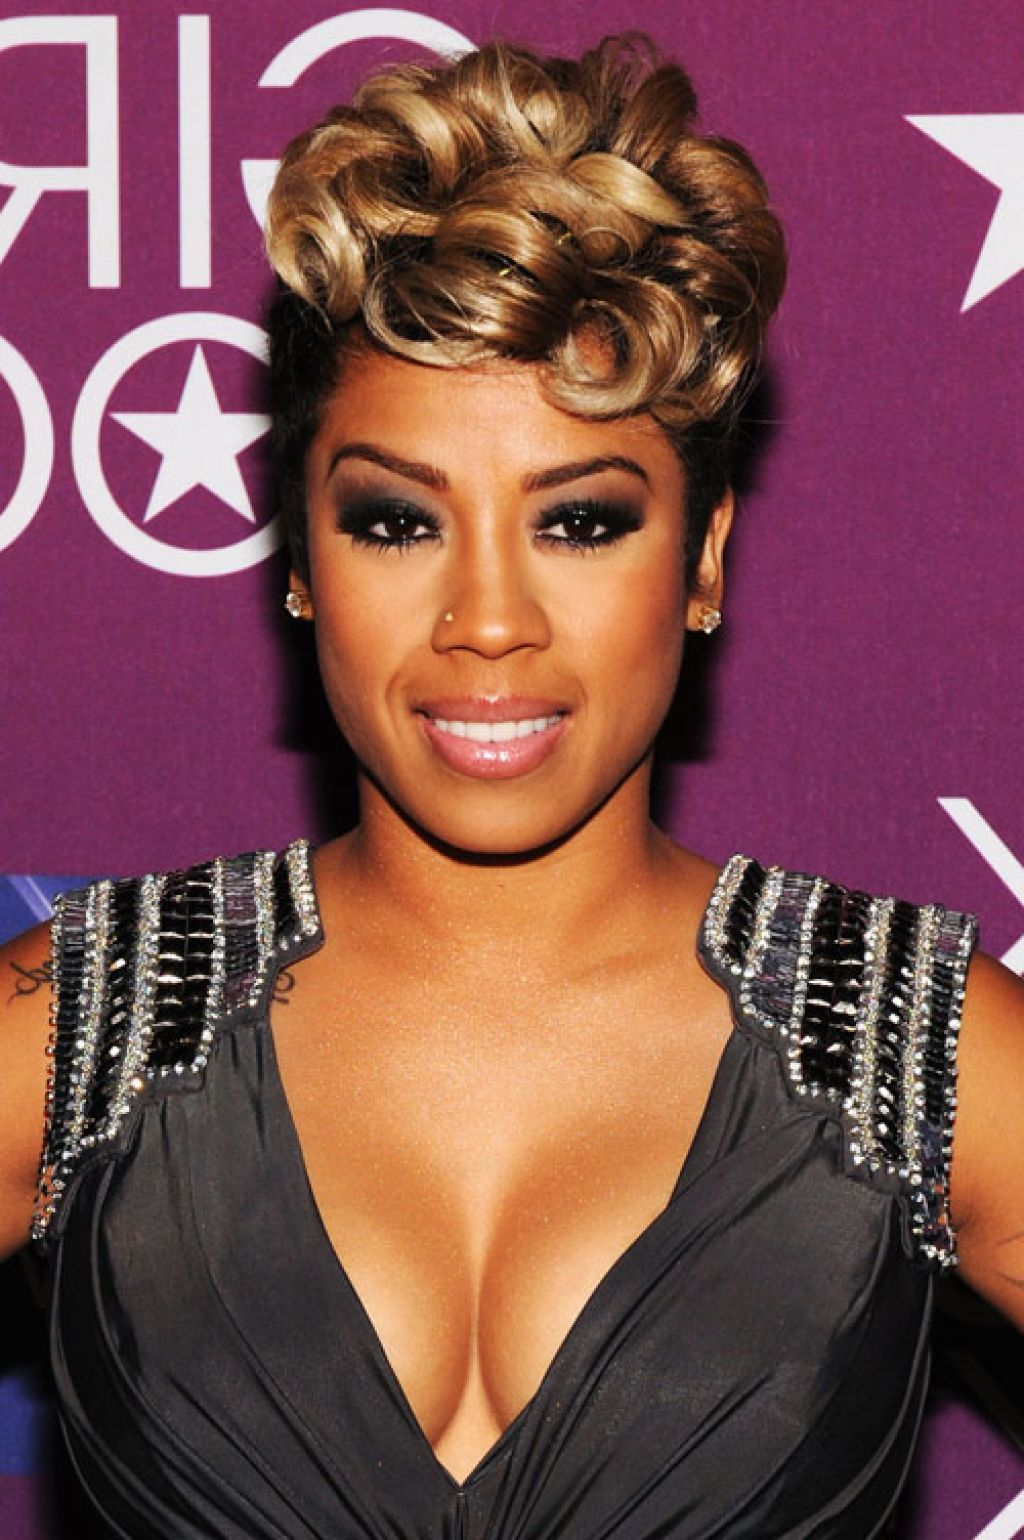 50 Famous Black Women Keyshia Cole Short Hairstyles Hairstyles